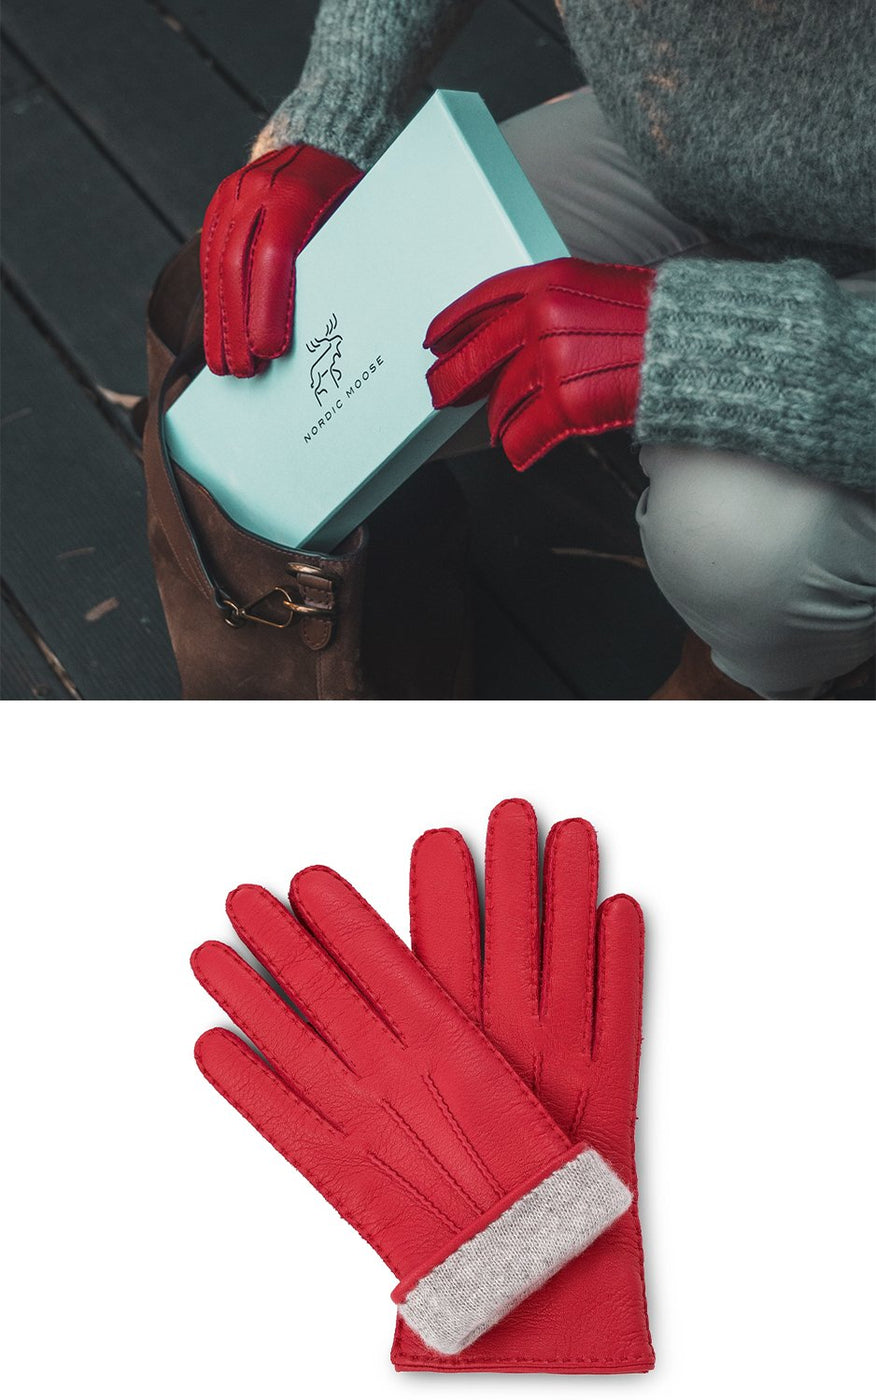 Woman in sweater and red leather gloves put a gift box into her bag